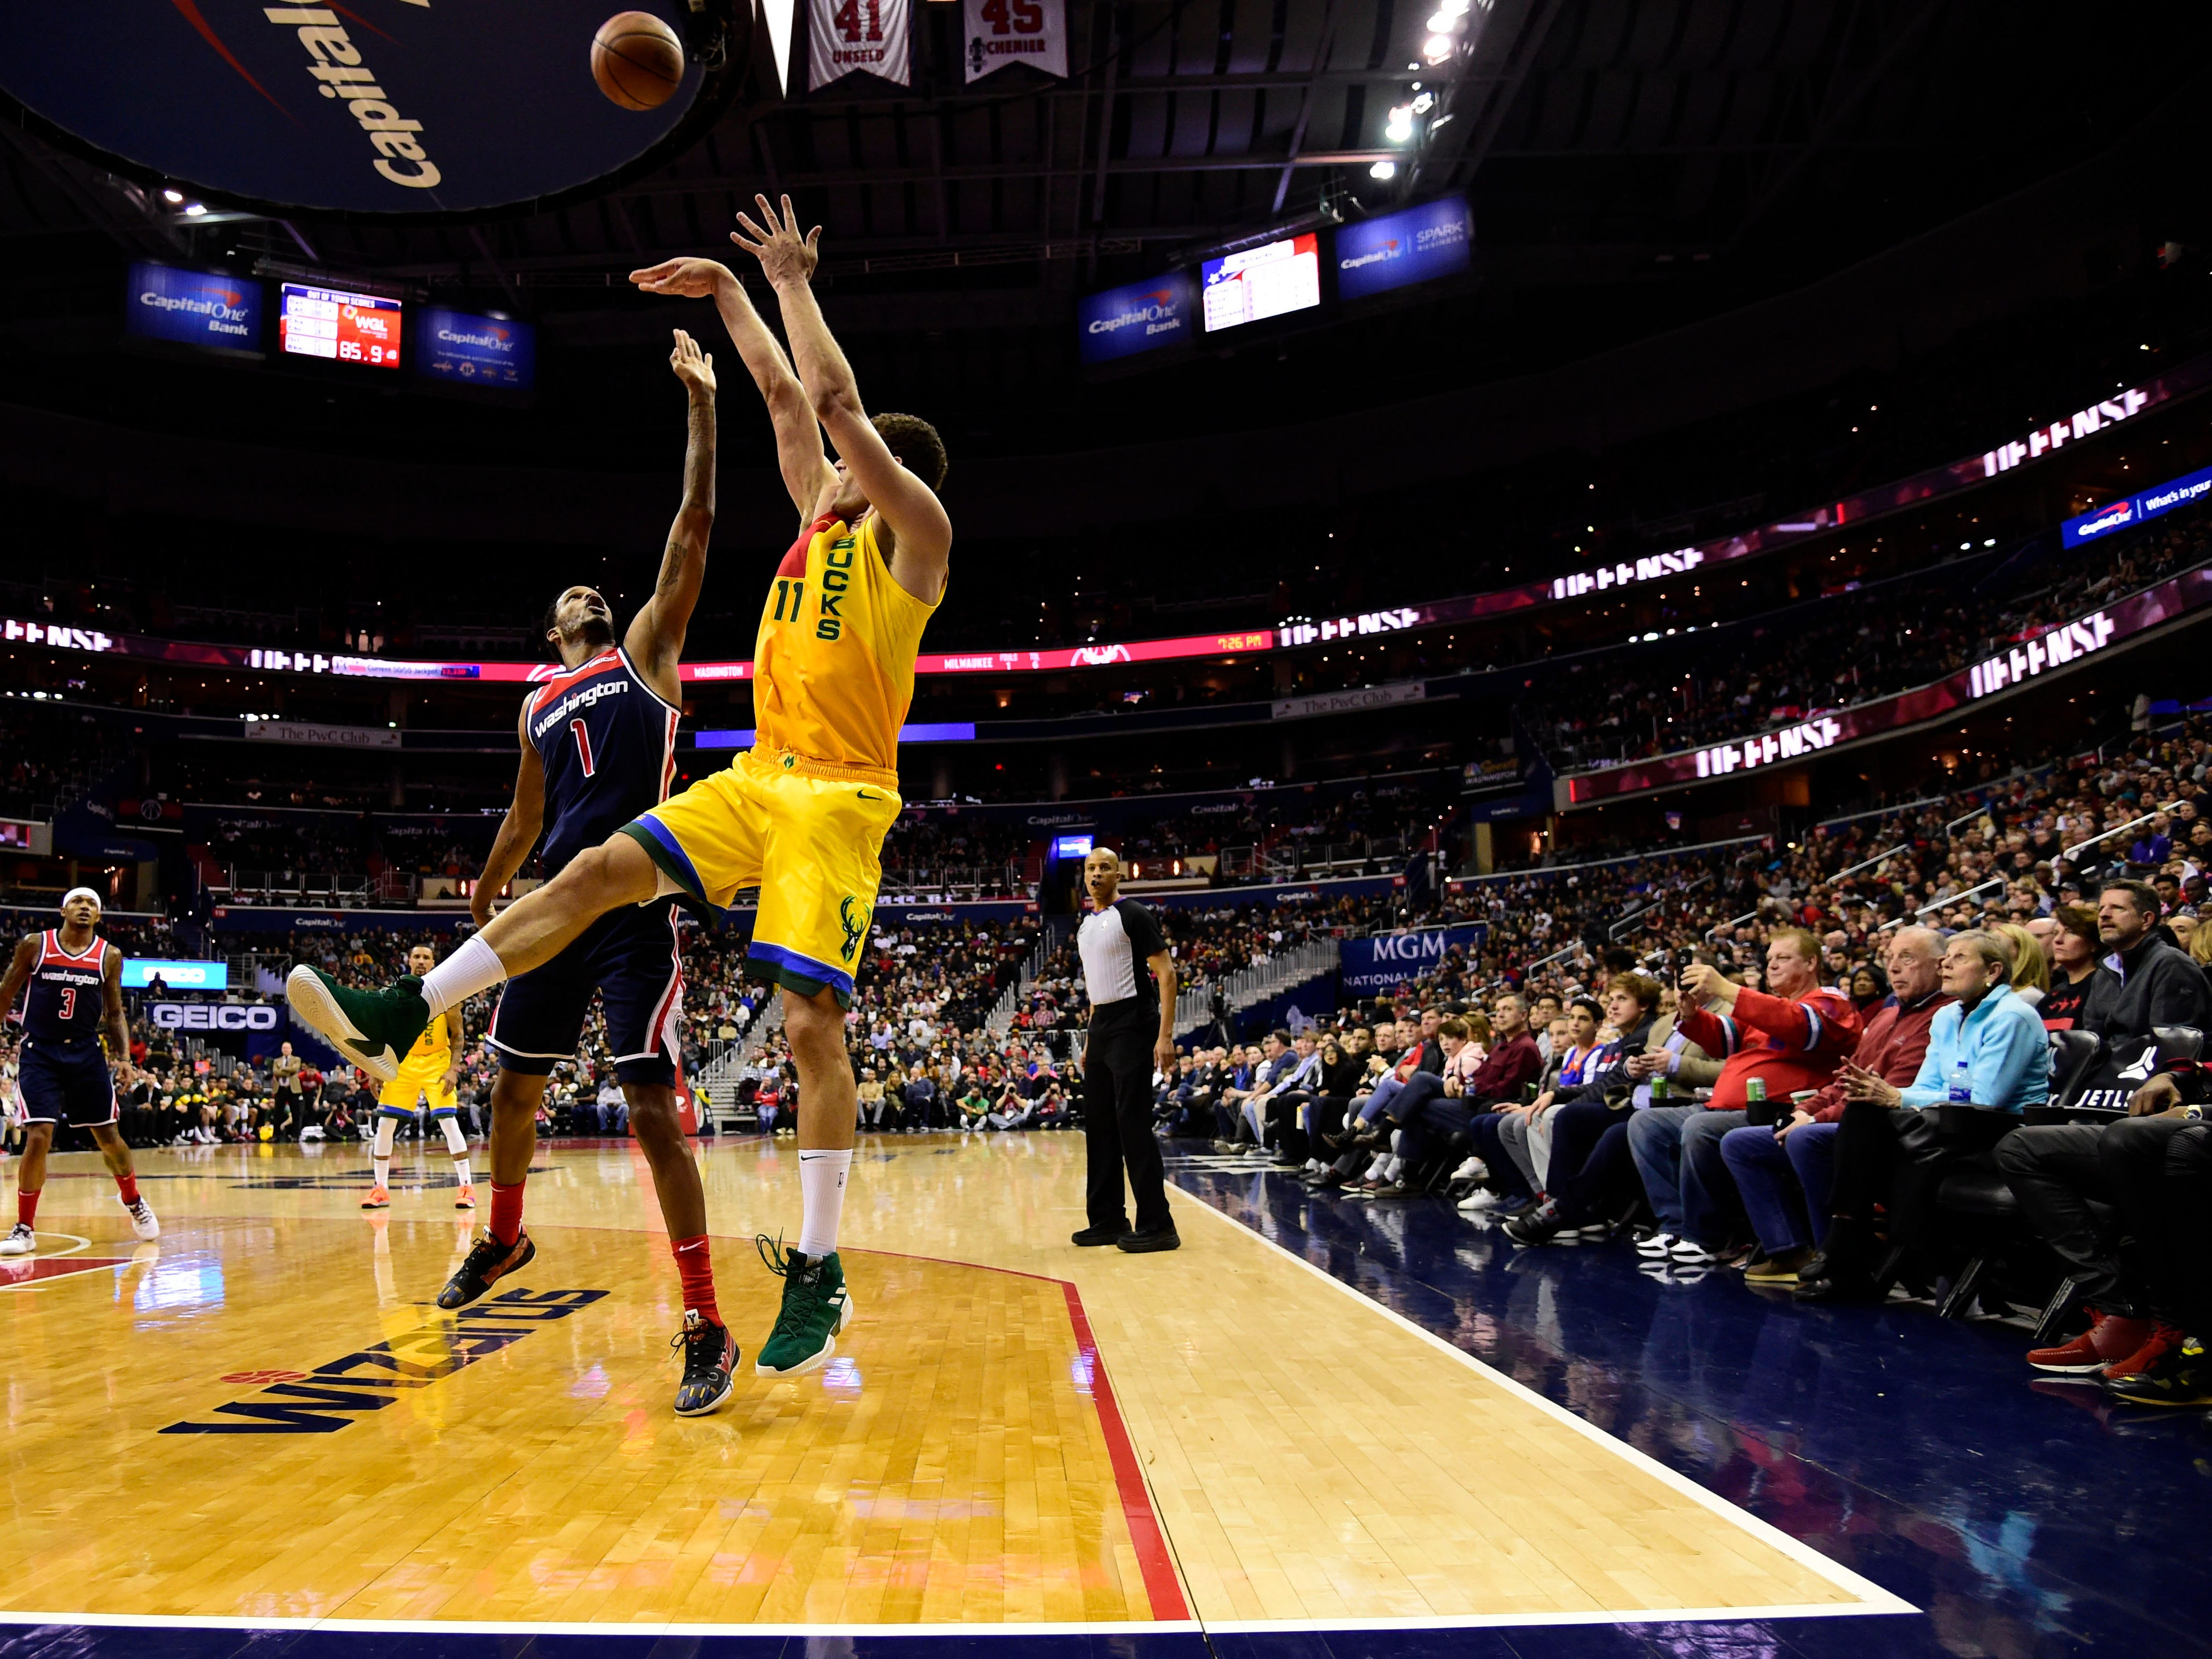 Bucks center Brook Lopez hoist up a shot from just inside the three-point line while being guarded by Wizards forward Trevor Ariza during the first half Saturday.